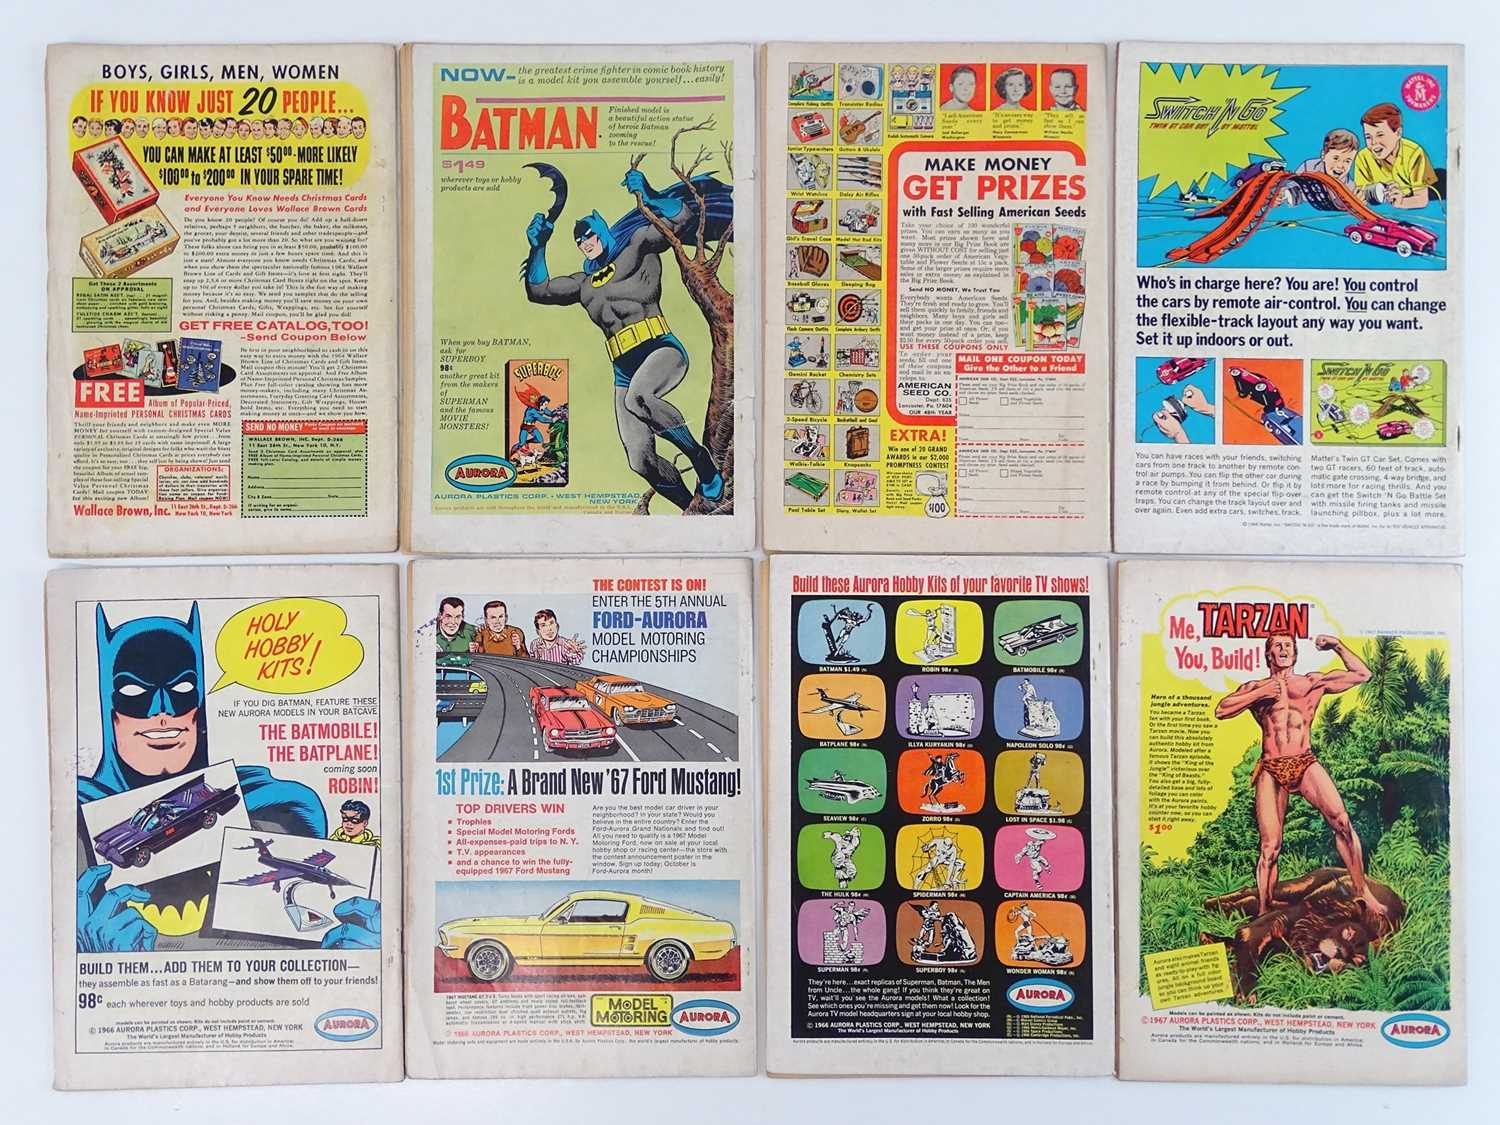 ACTION COMICS: SUPERMAN #315, 324, 336, 341, 342, 344, 346, 356 - (8 in Lot) - (1964/67 - DC - UK - Image 2 of 2